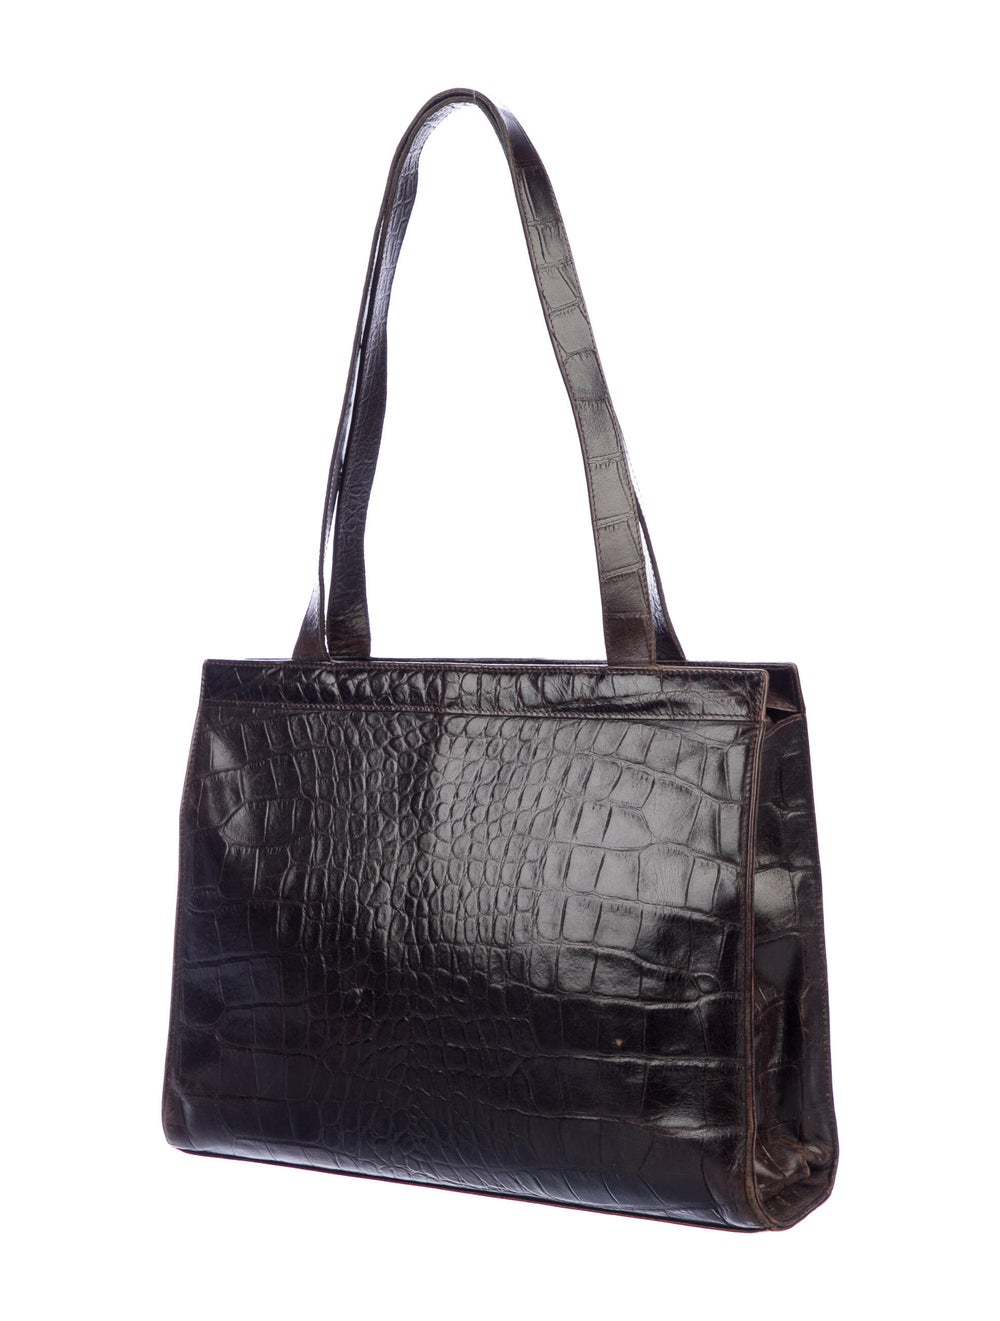 Mulberry Embossed Leather Tote Brown - image 3